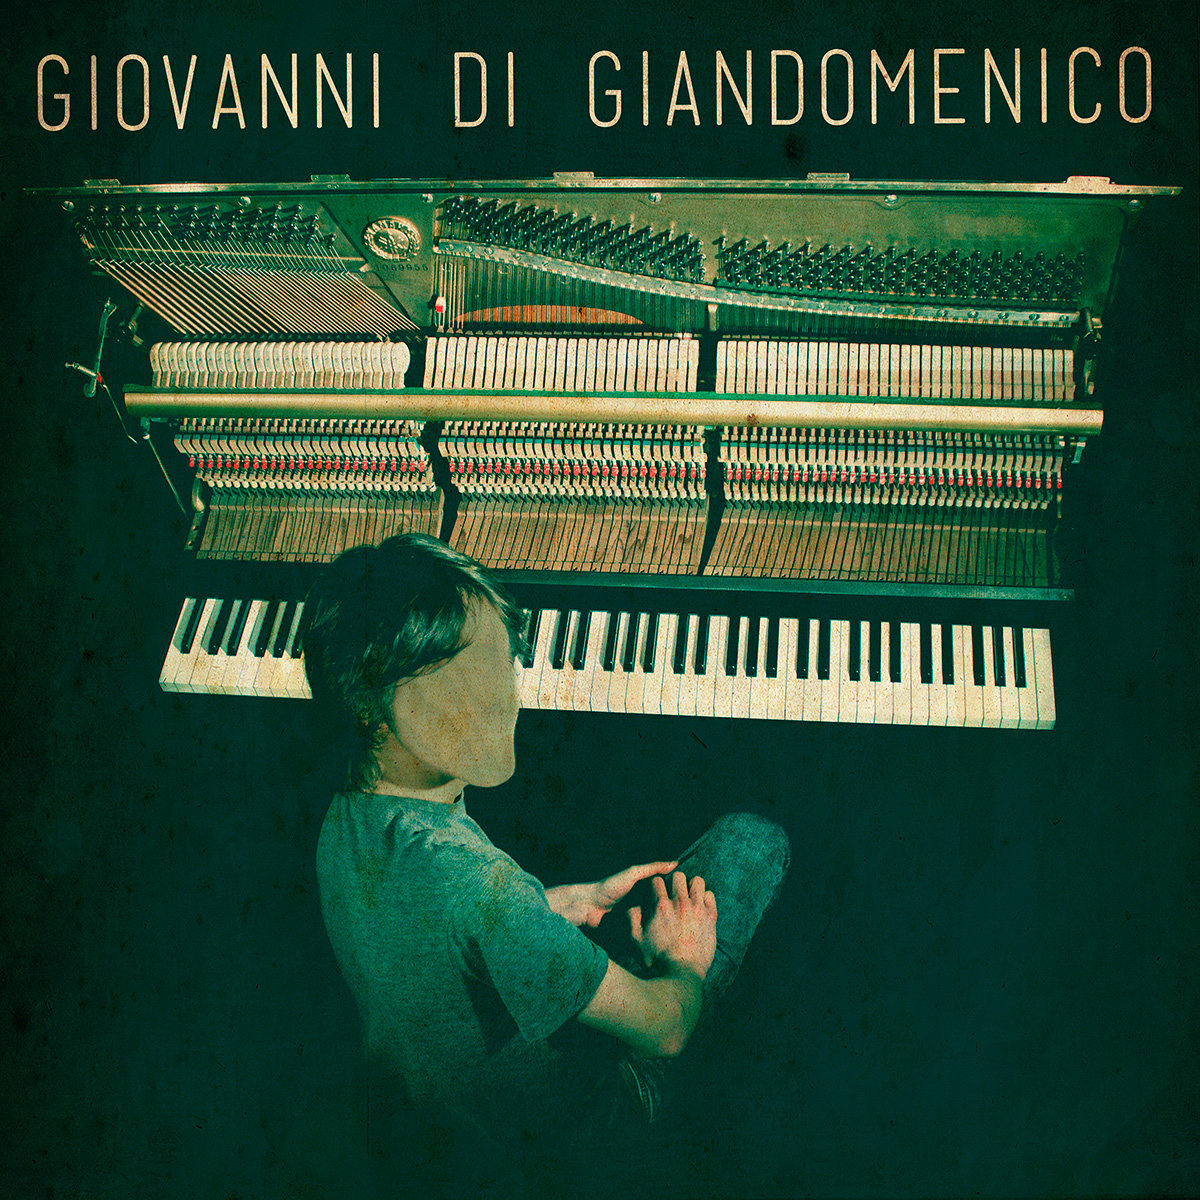 GiovannidiGiandomenico